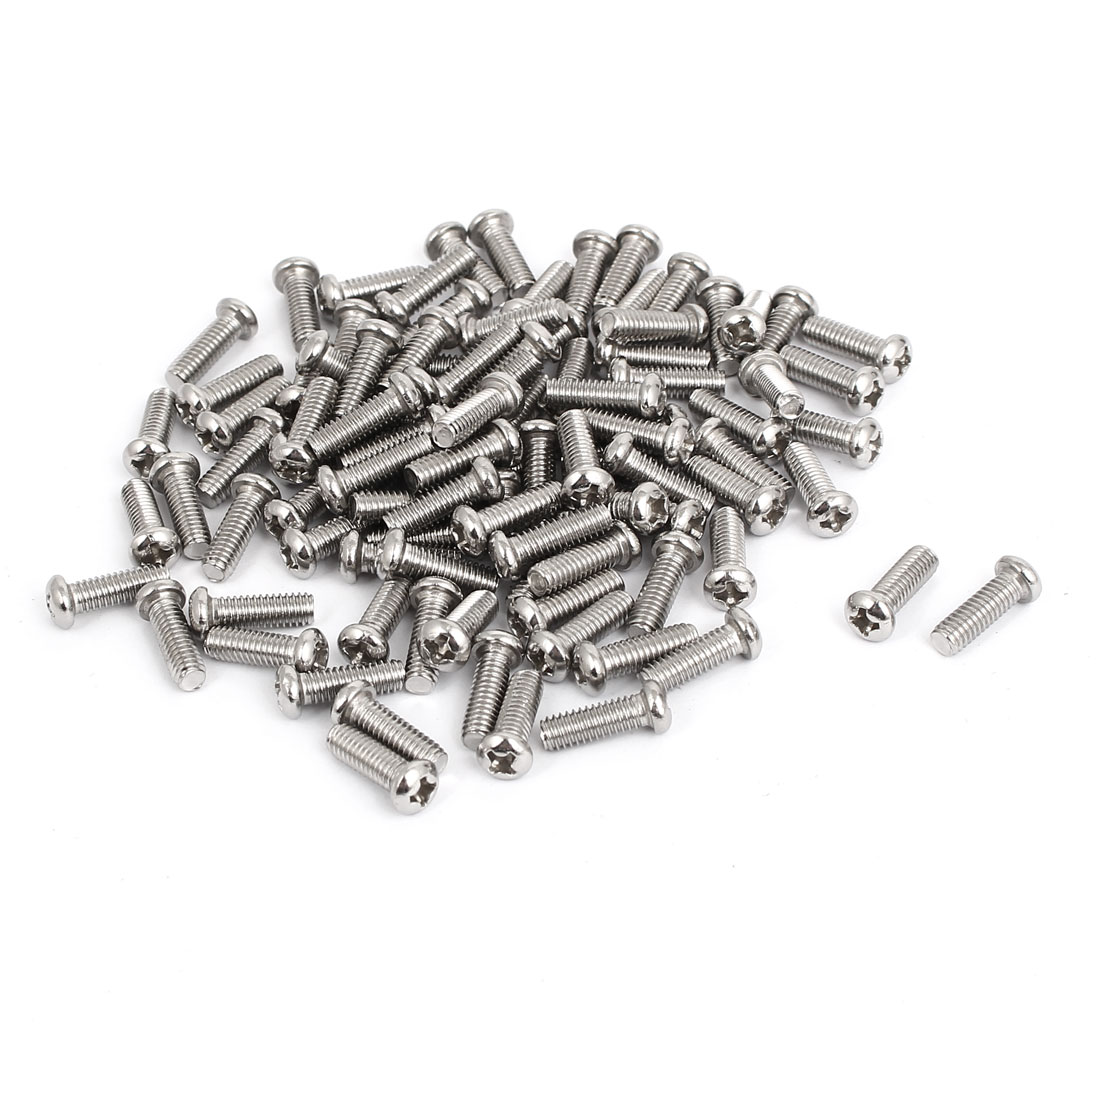 M4x12mm Stainless Steel Phillips Round Pan Head Machine Screws 100pcs